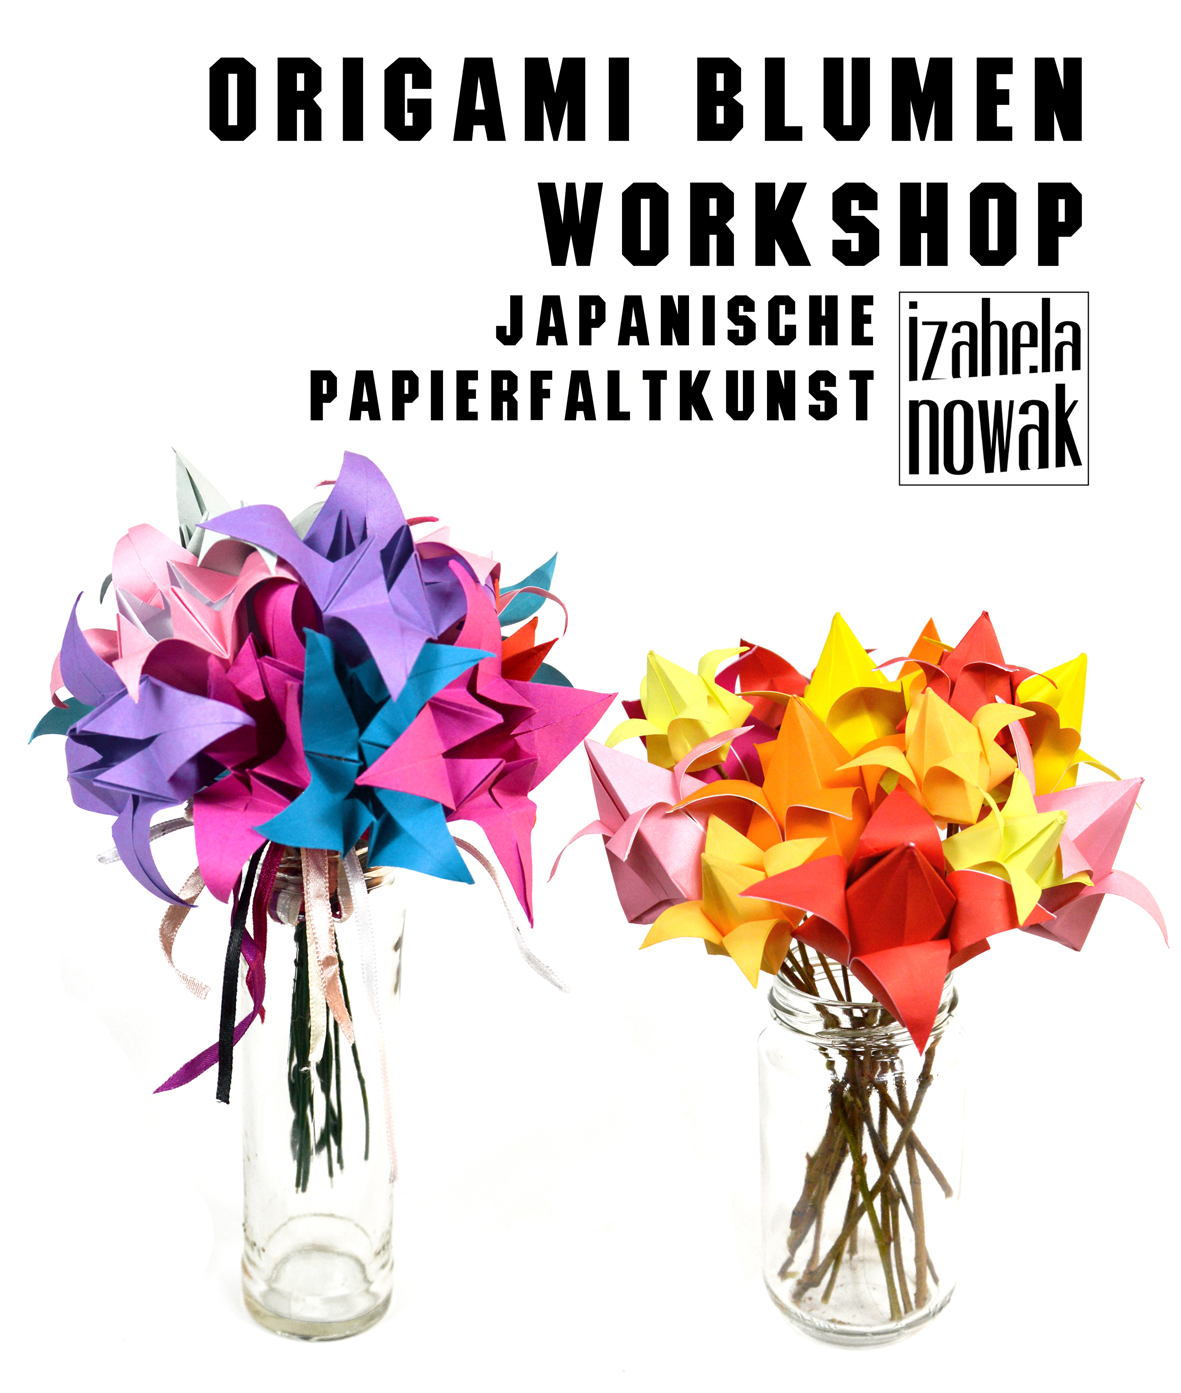 Origami Blumen Workshop_Izabela Nowak